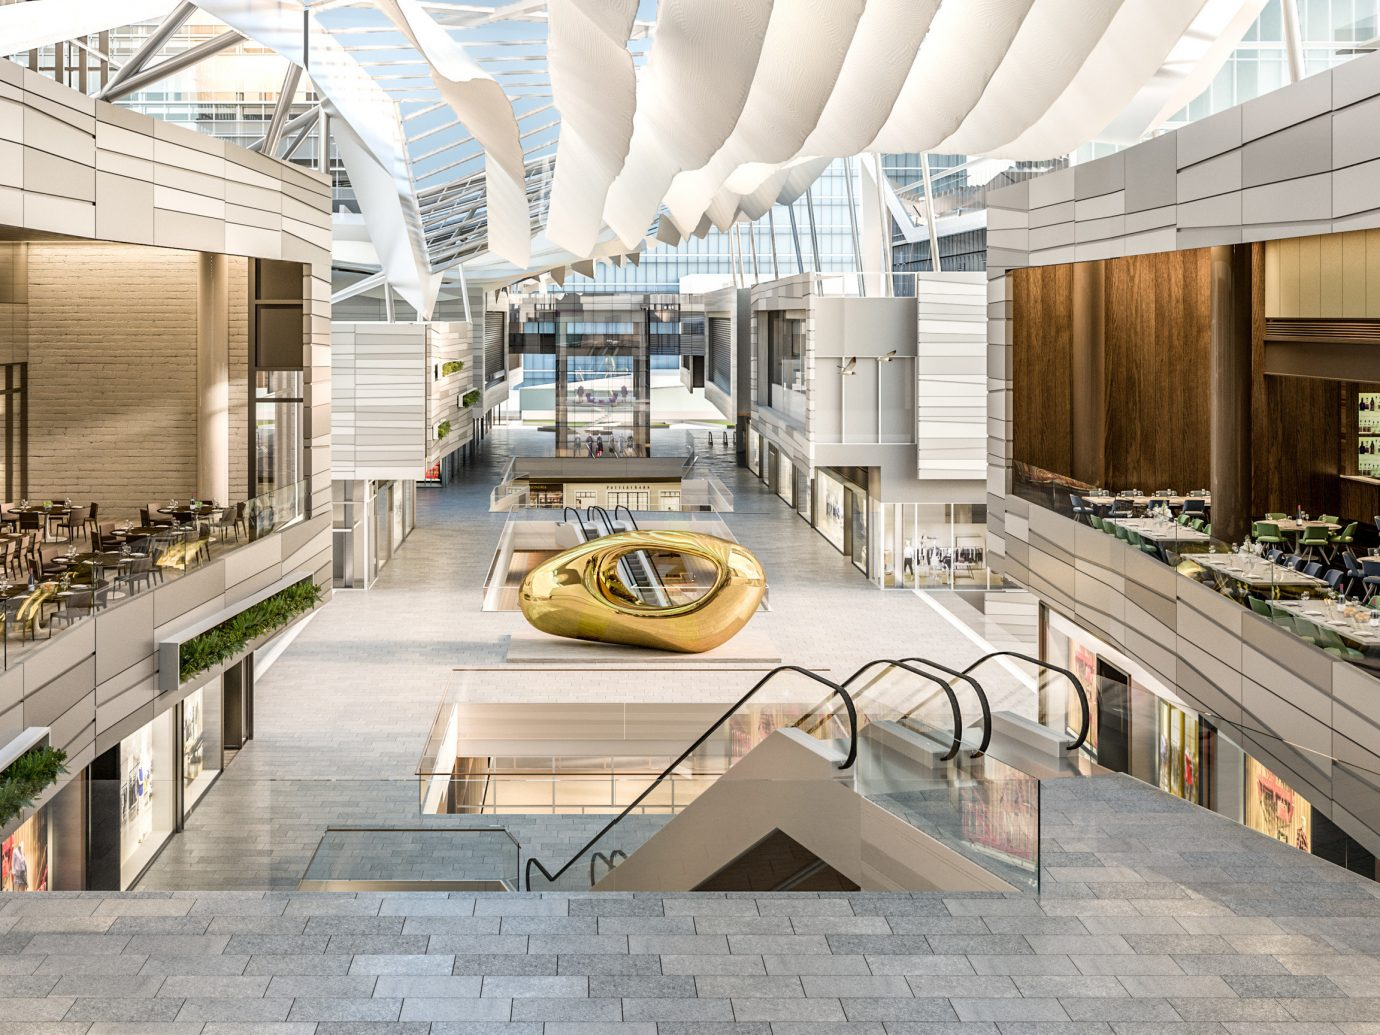 America Trip Ideas Weekend Getaways indoor Lobby Architecture floor interior design headquarters home real estate professional Design facade estate office shopping mall